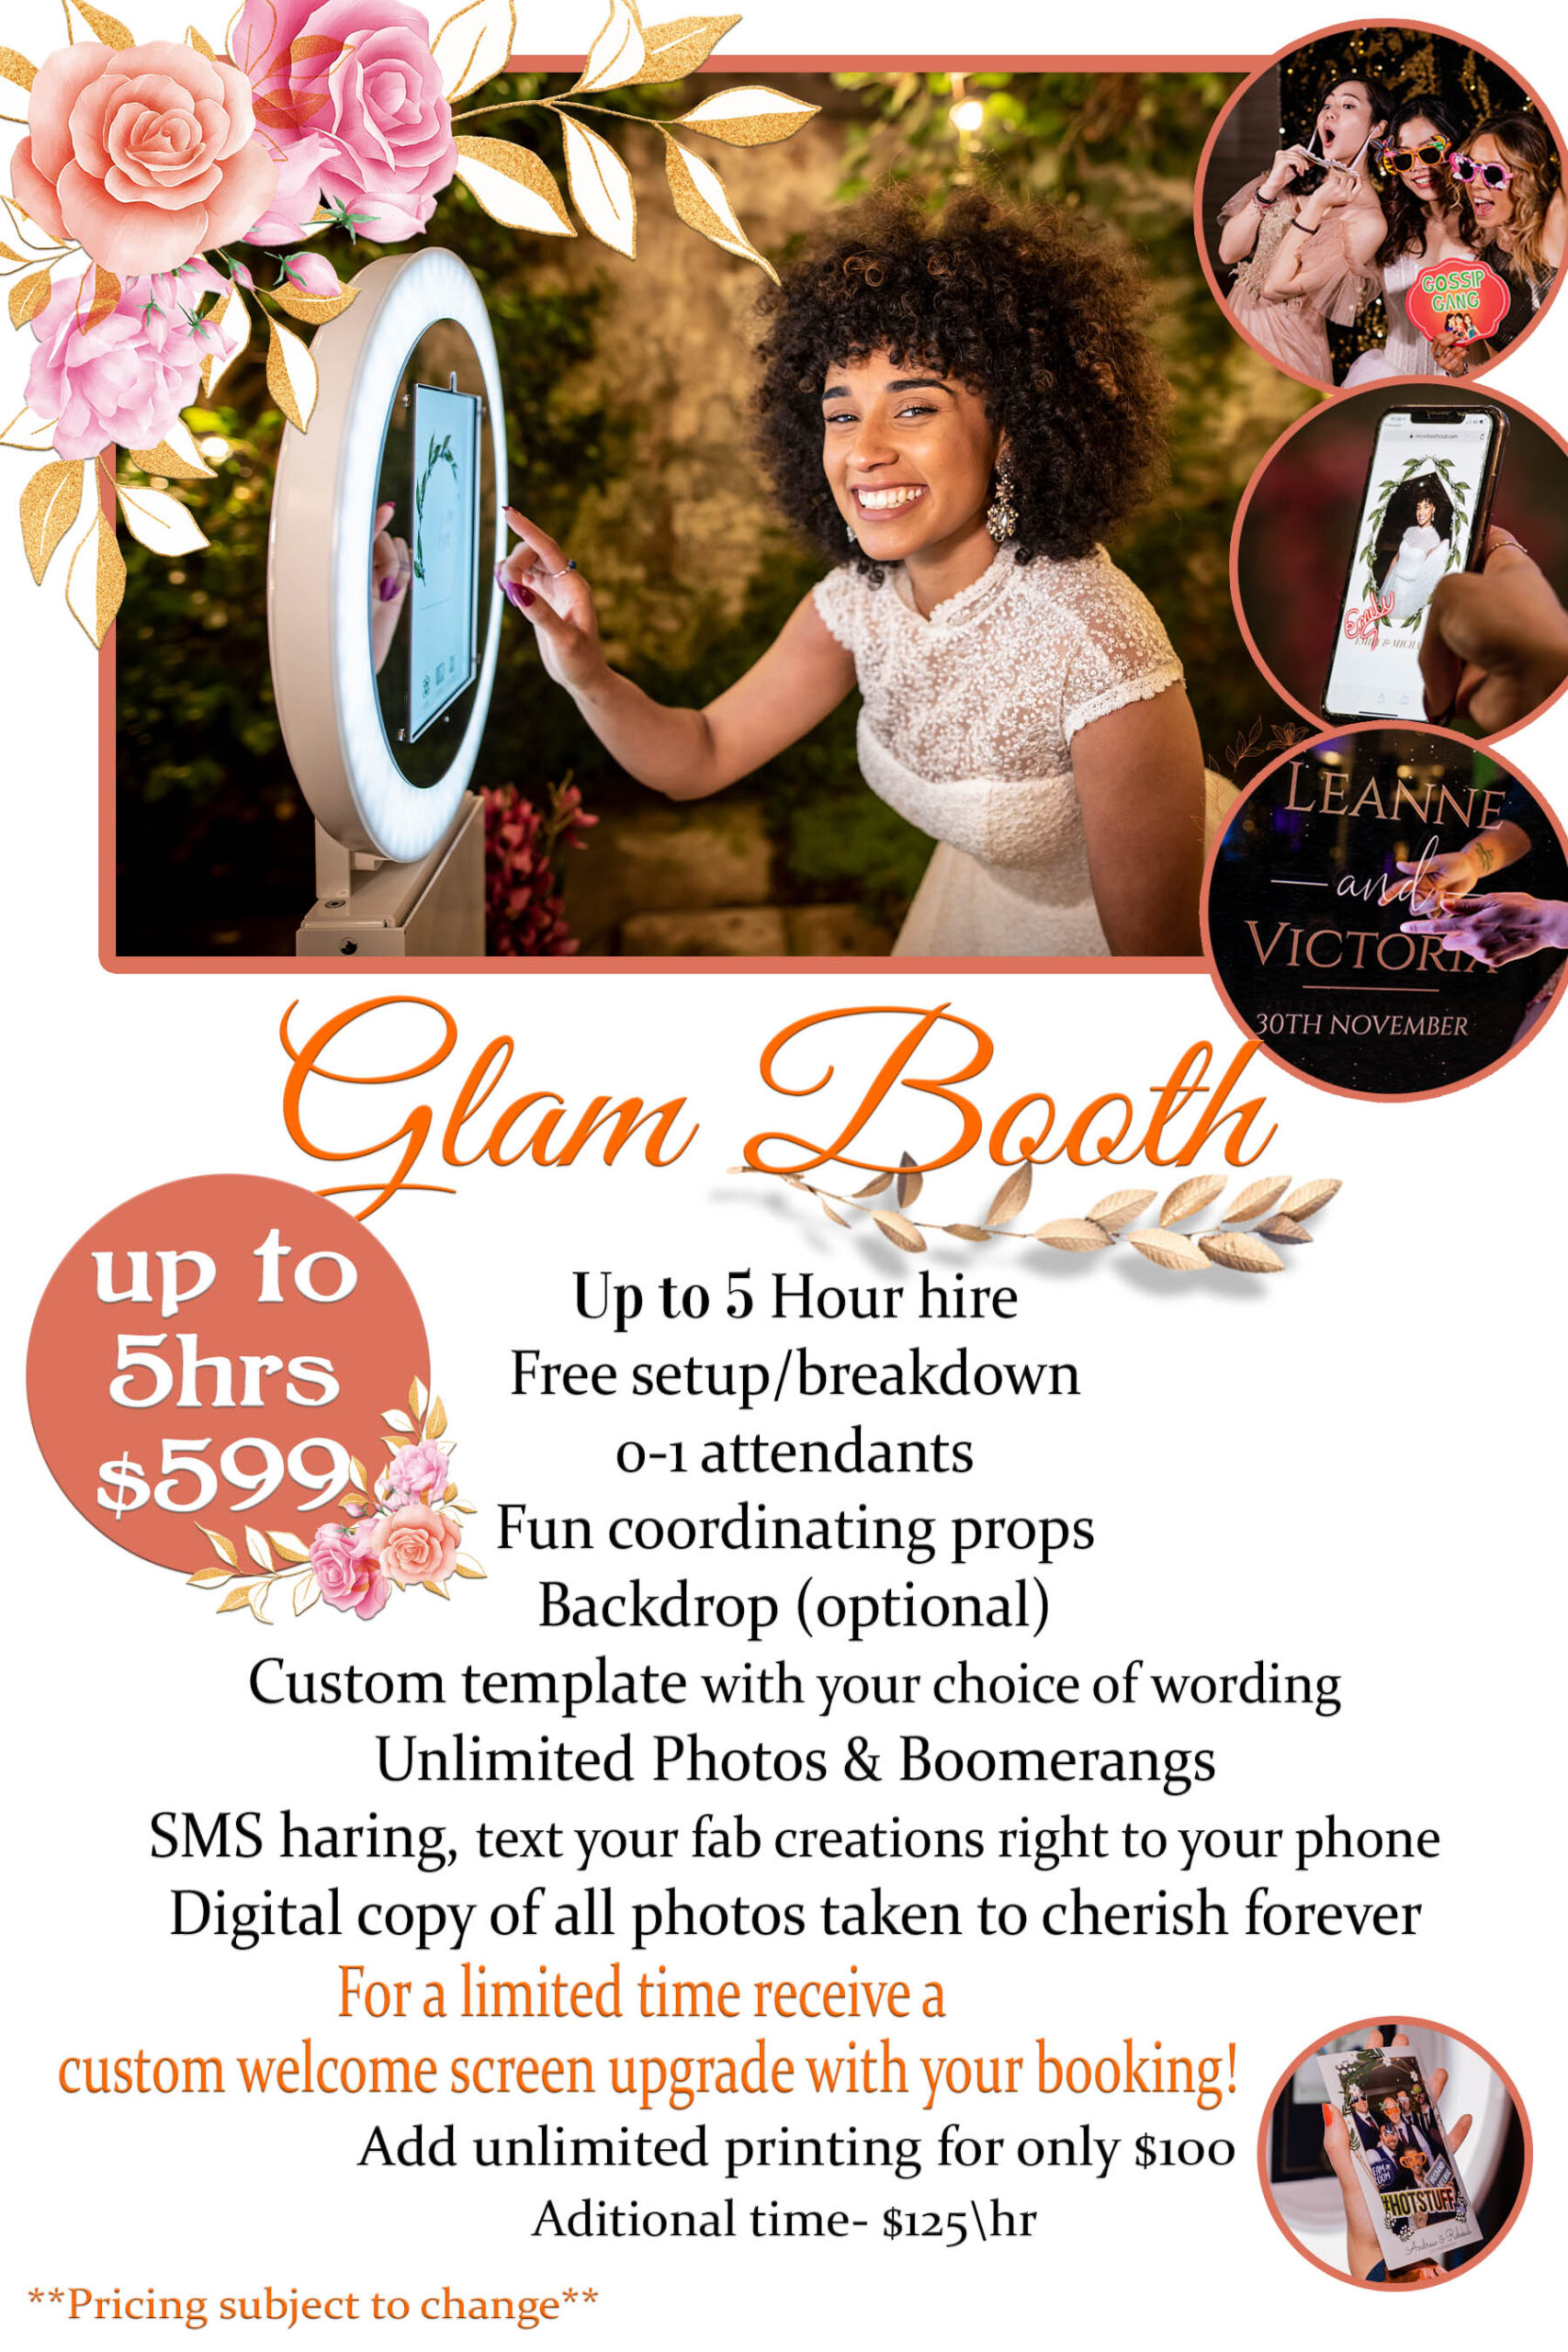 Glam booth ad